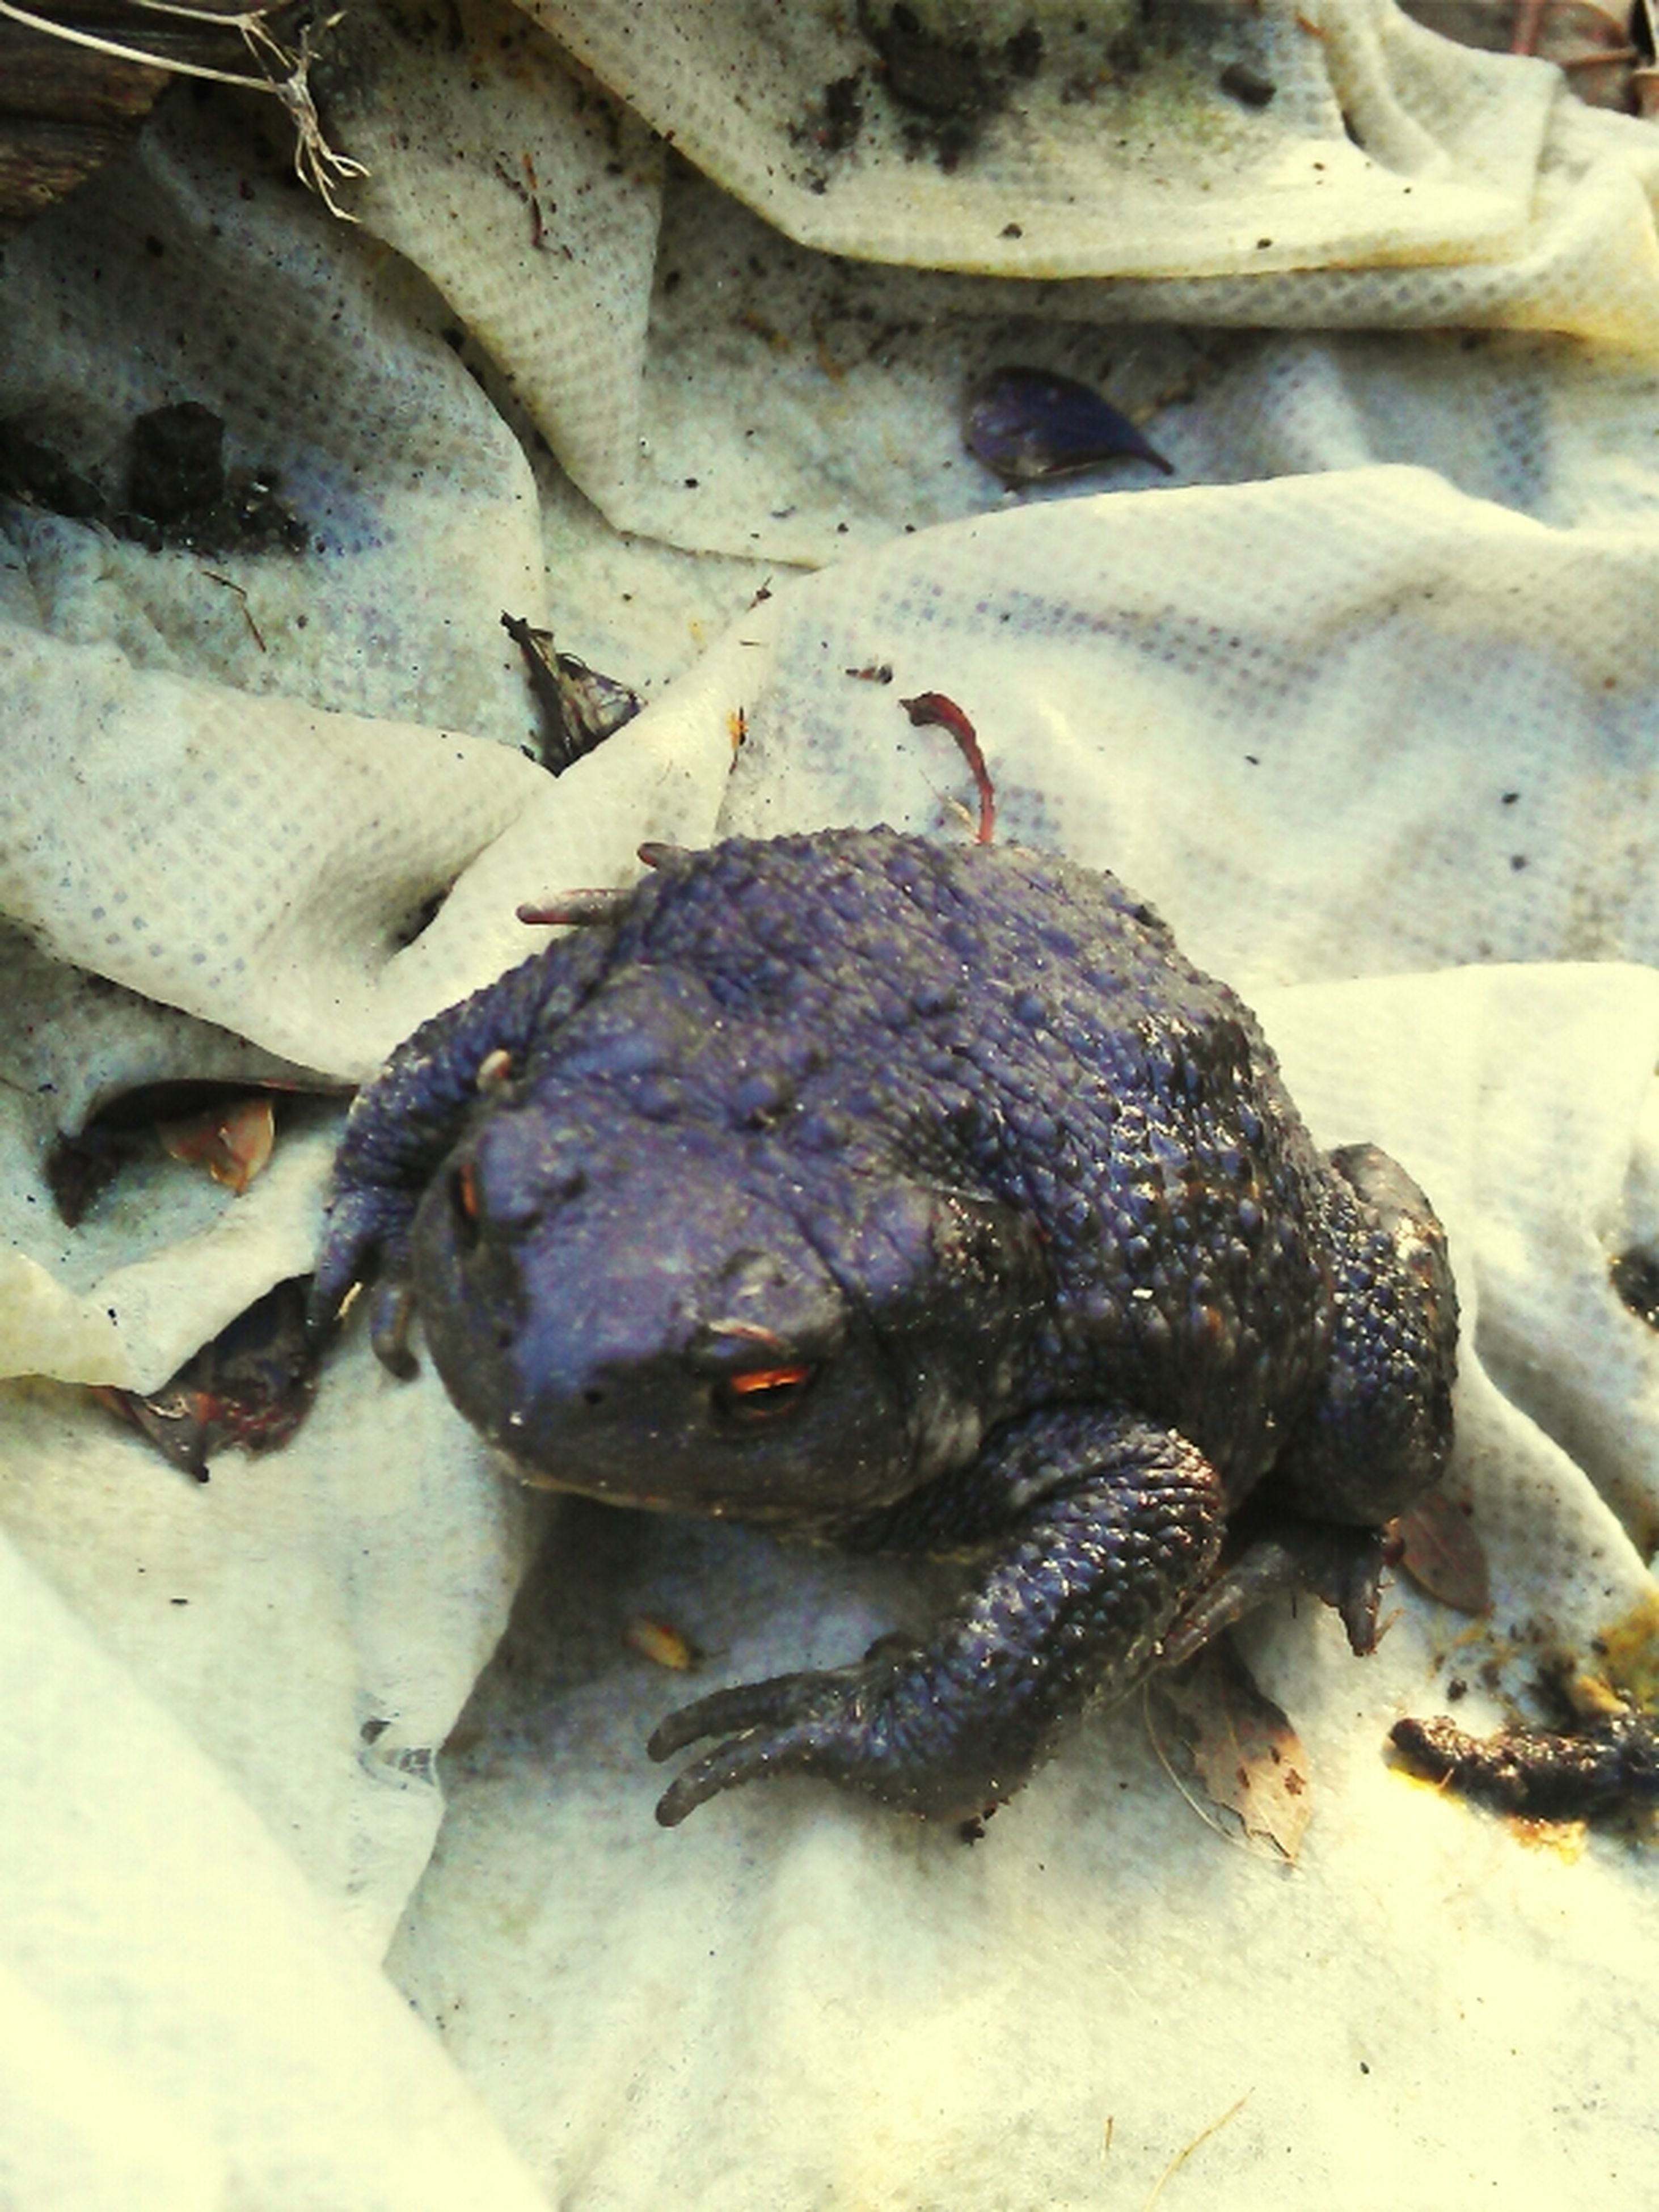 animal themes, animals in the wild, dead animal, wildlife, one animal, fish, high angle view, reptile, close-up, frog, seafood, death, amphibian, day, outdoors, zoology, no people, nature, crab, the end